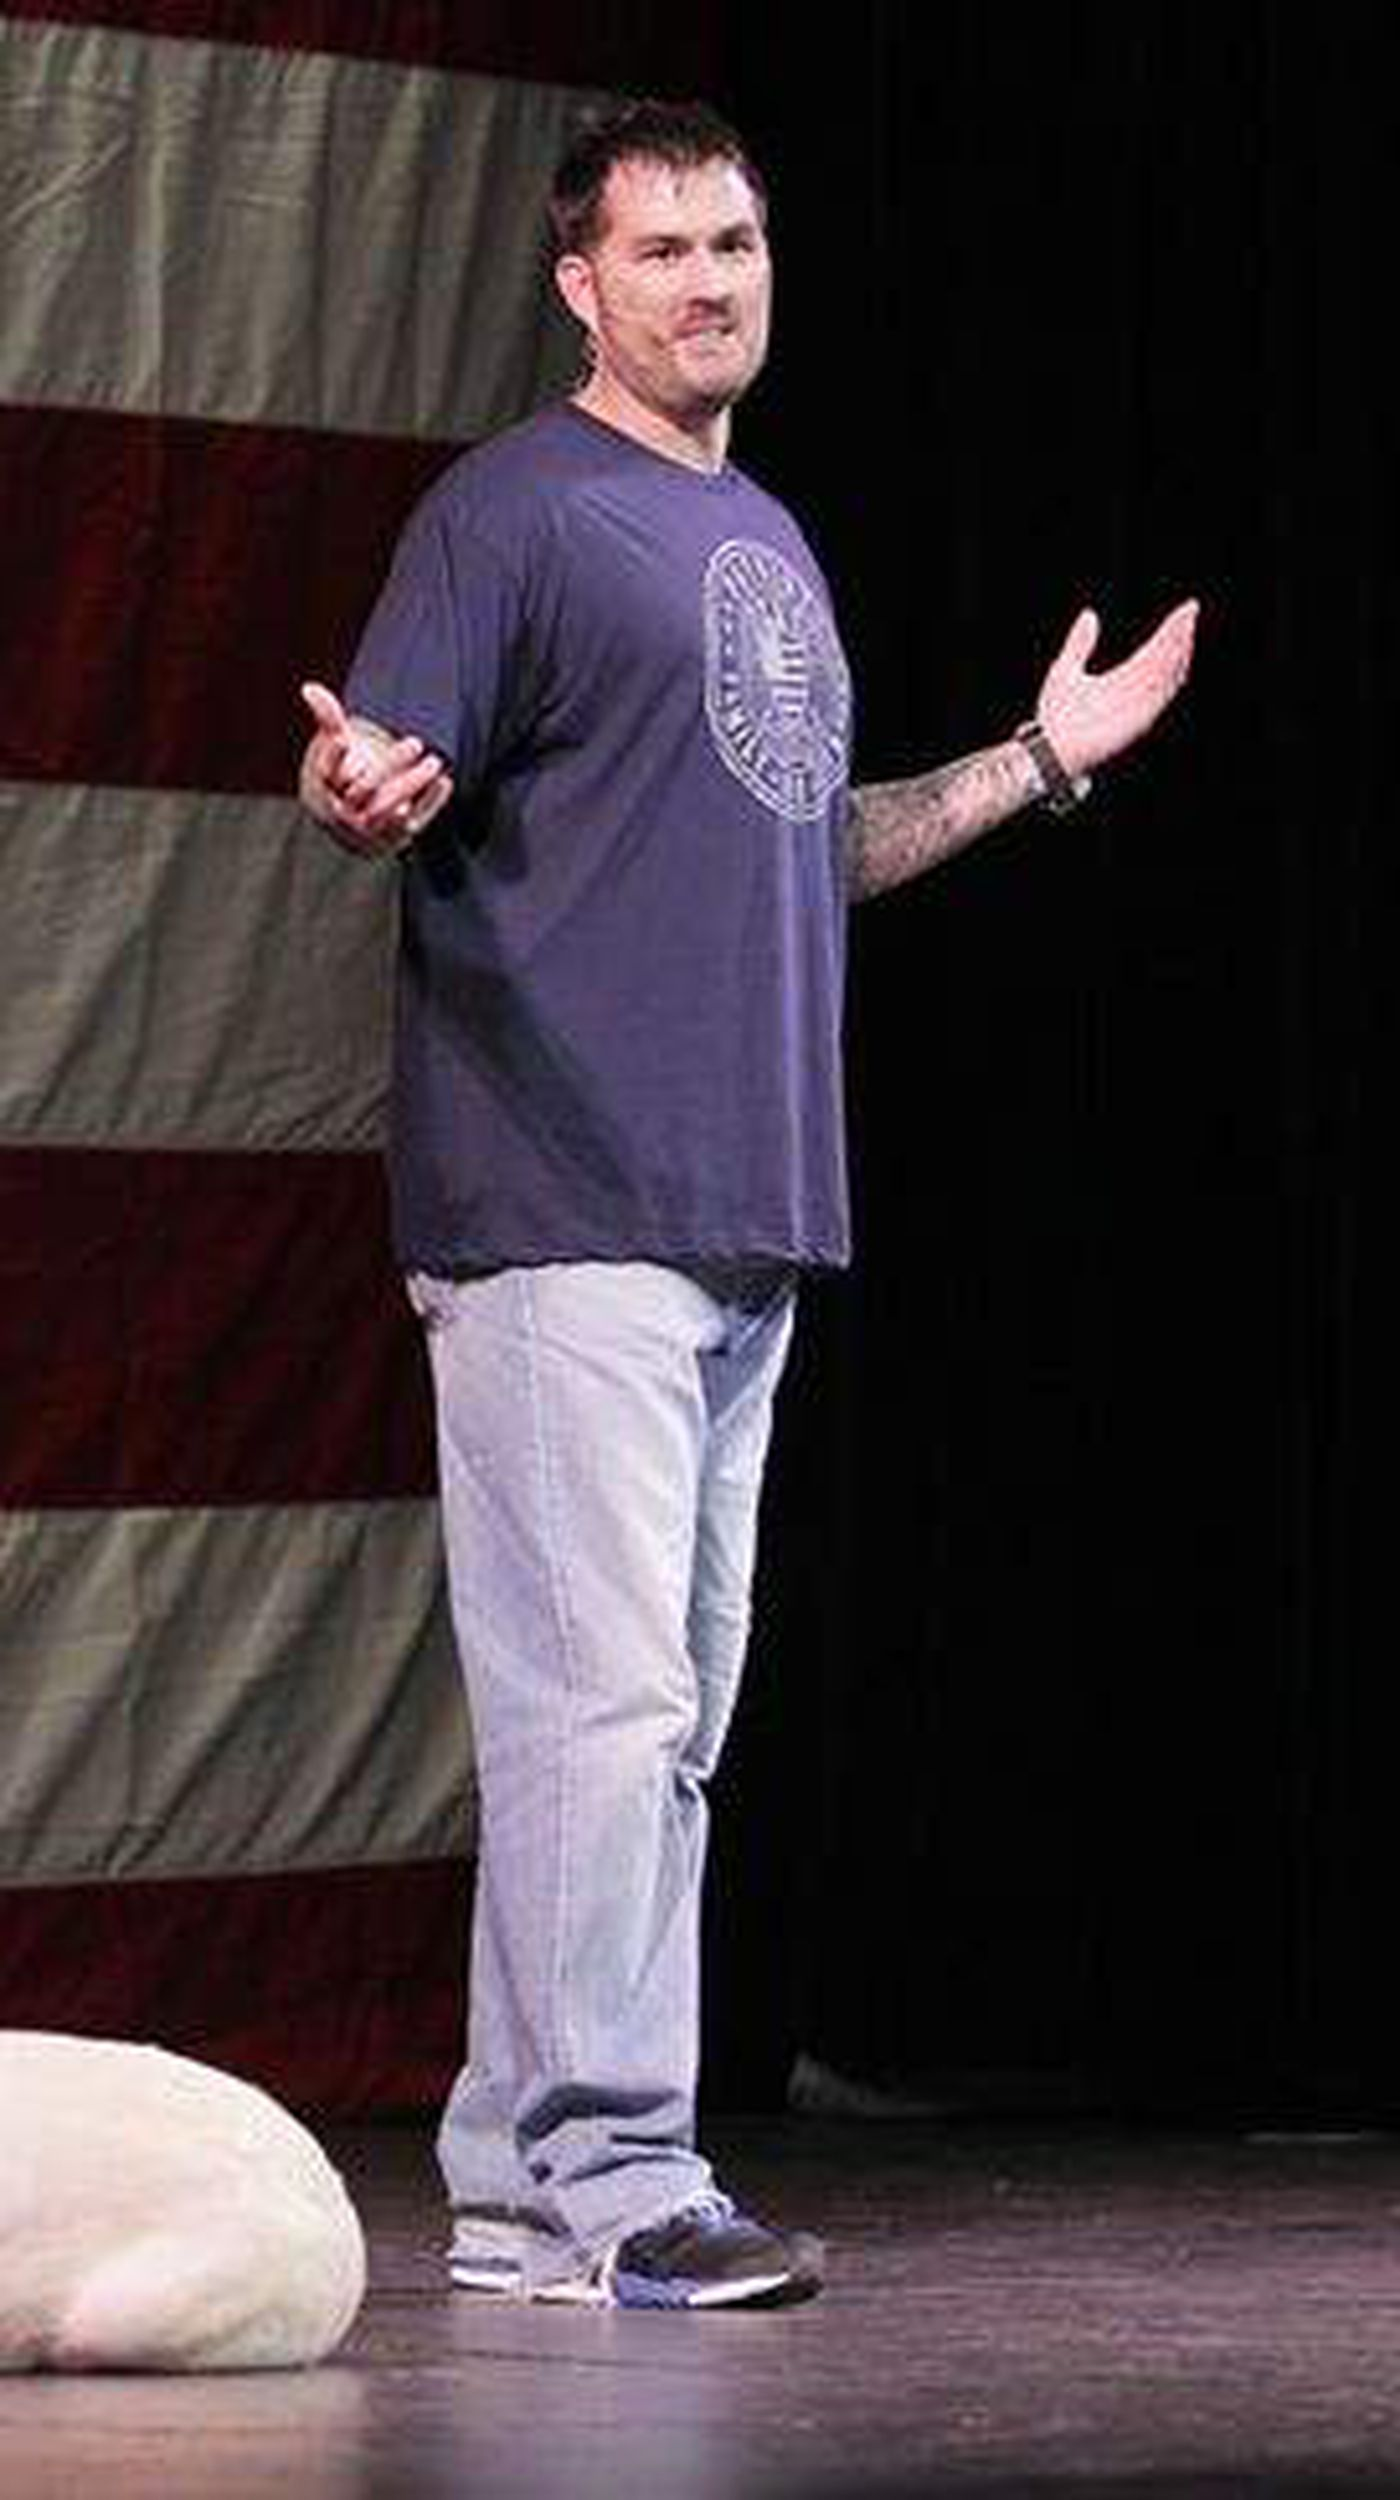 Luttrell where does live marcus Marcus Luttrell